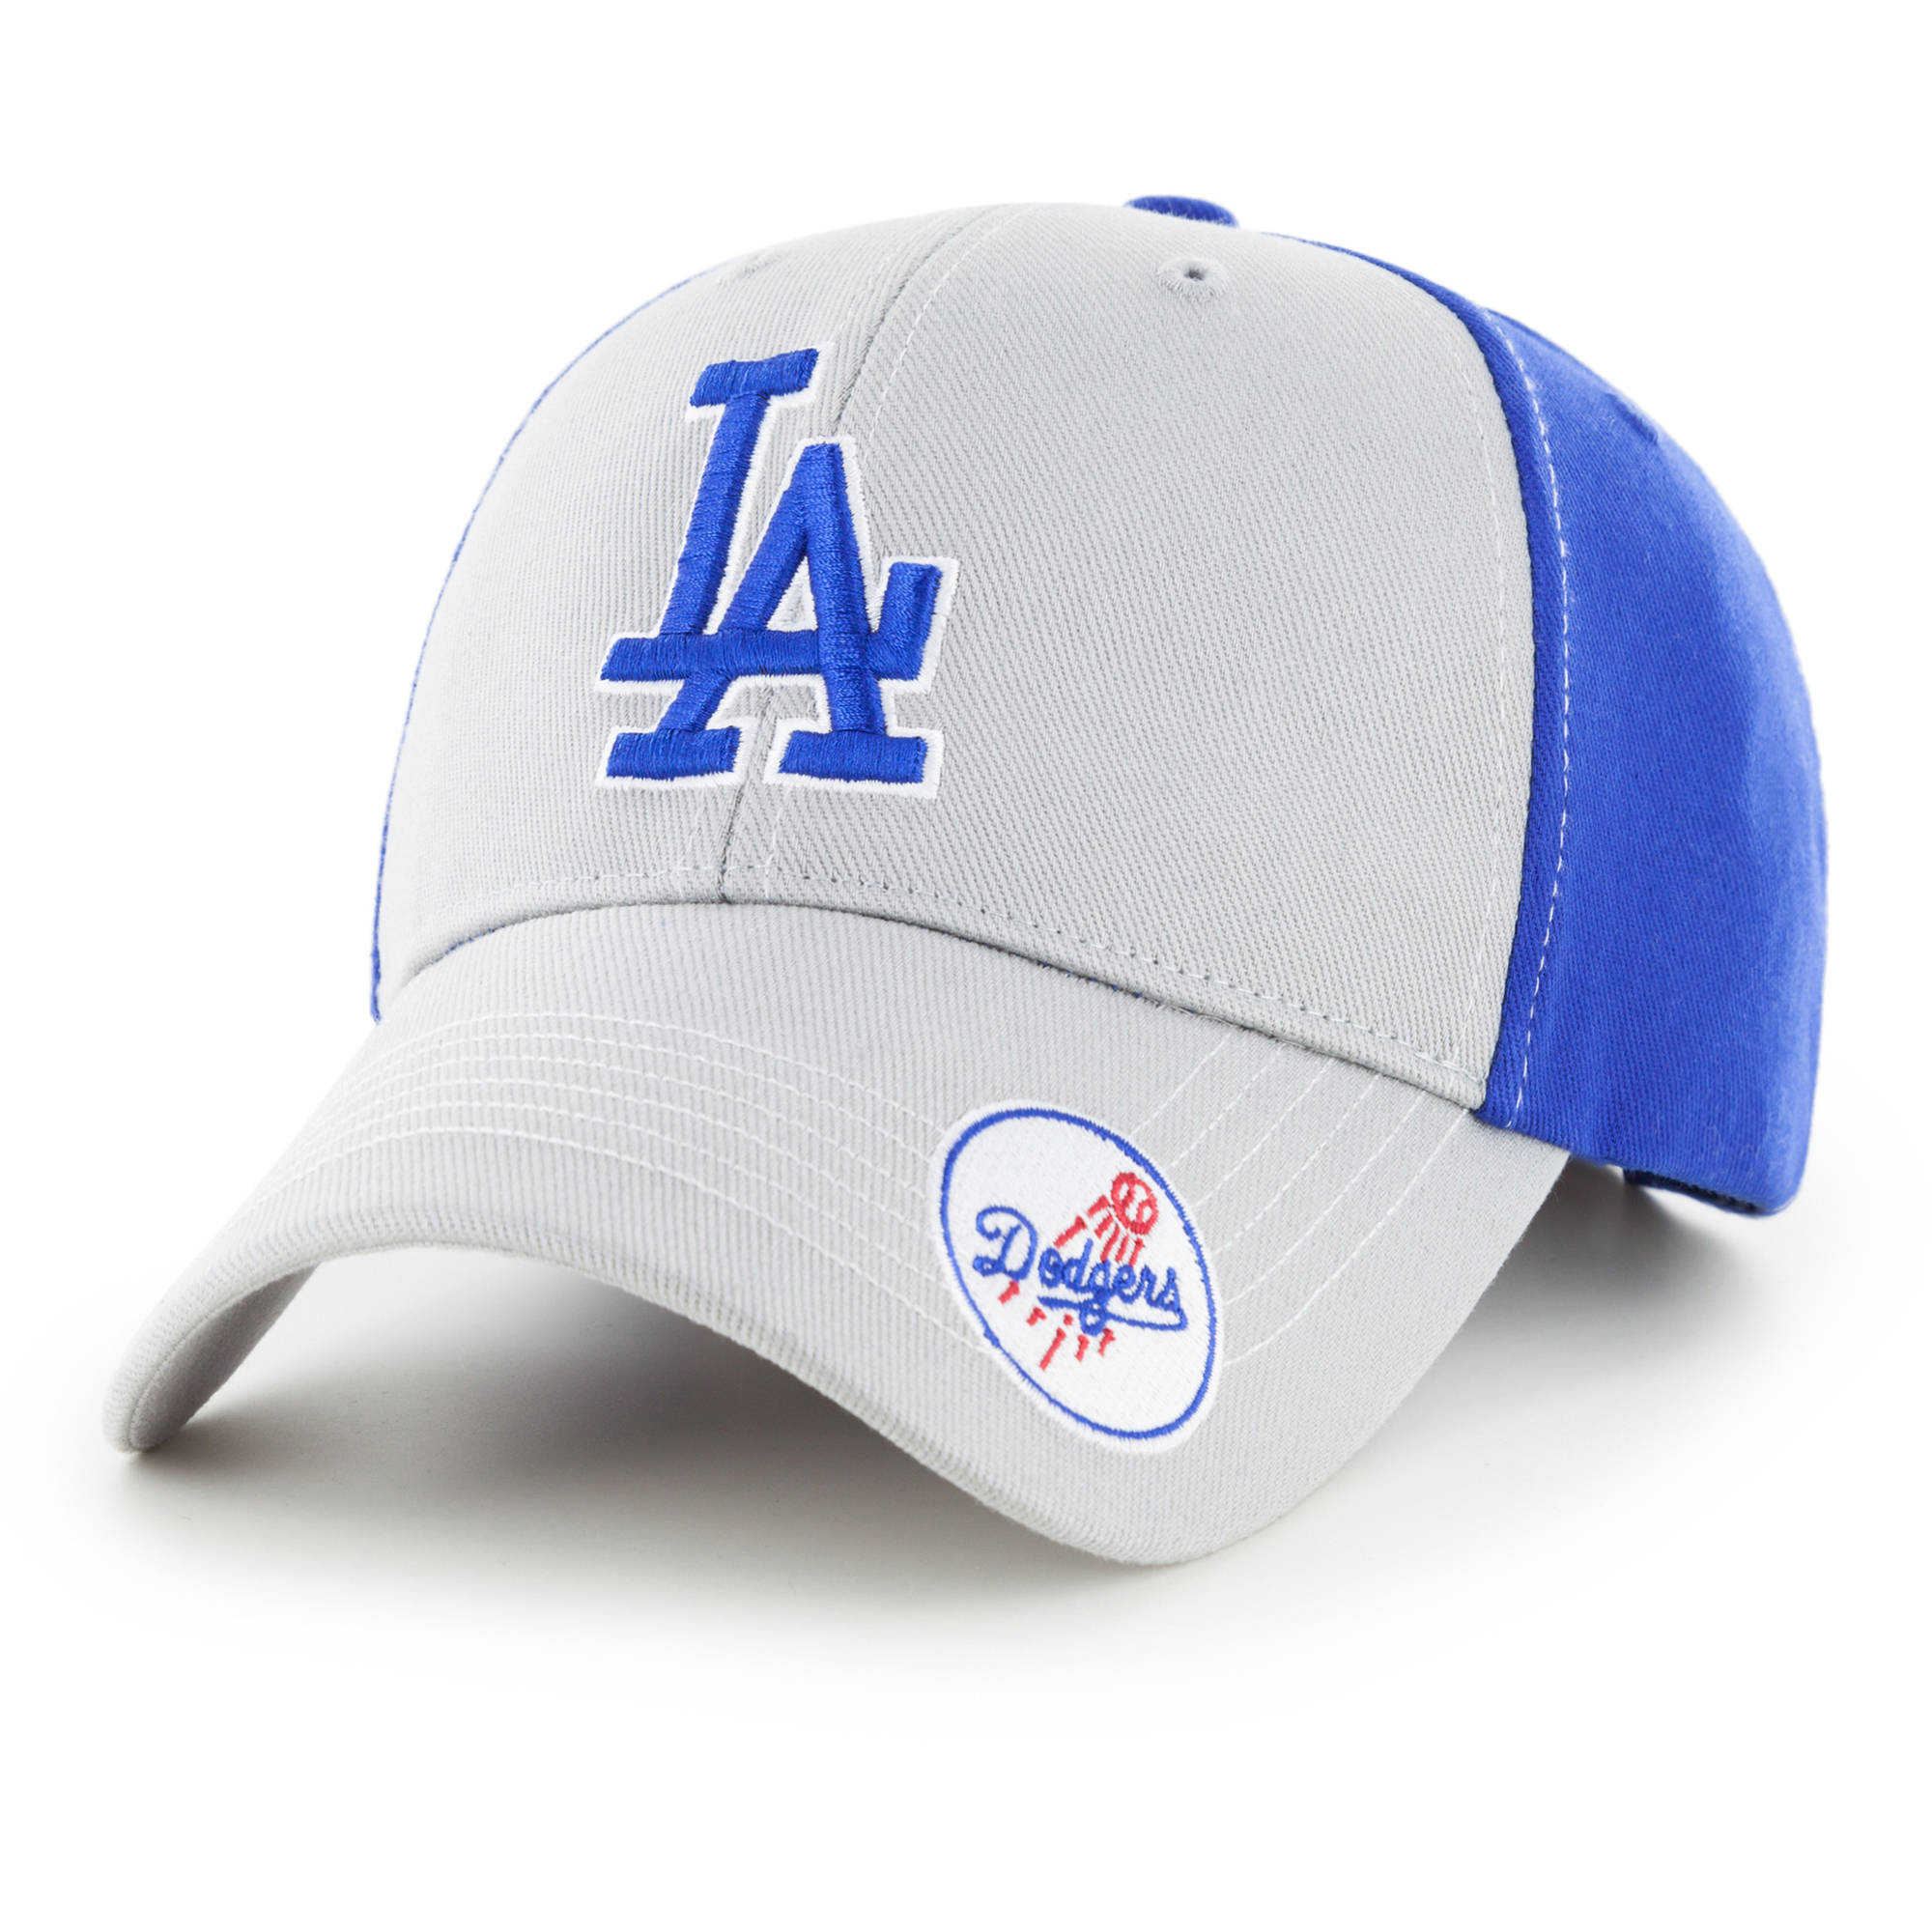 MLB Los Angeles Dodgers  Revolver Cap / Hat  - Fan Favorite